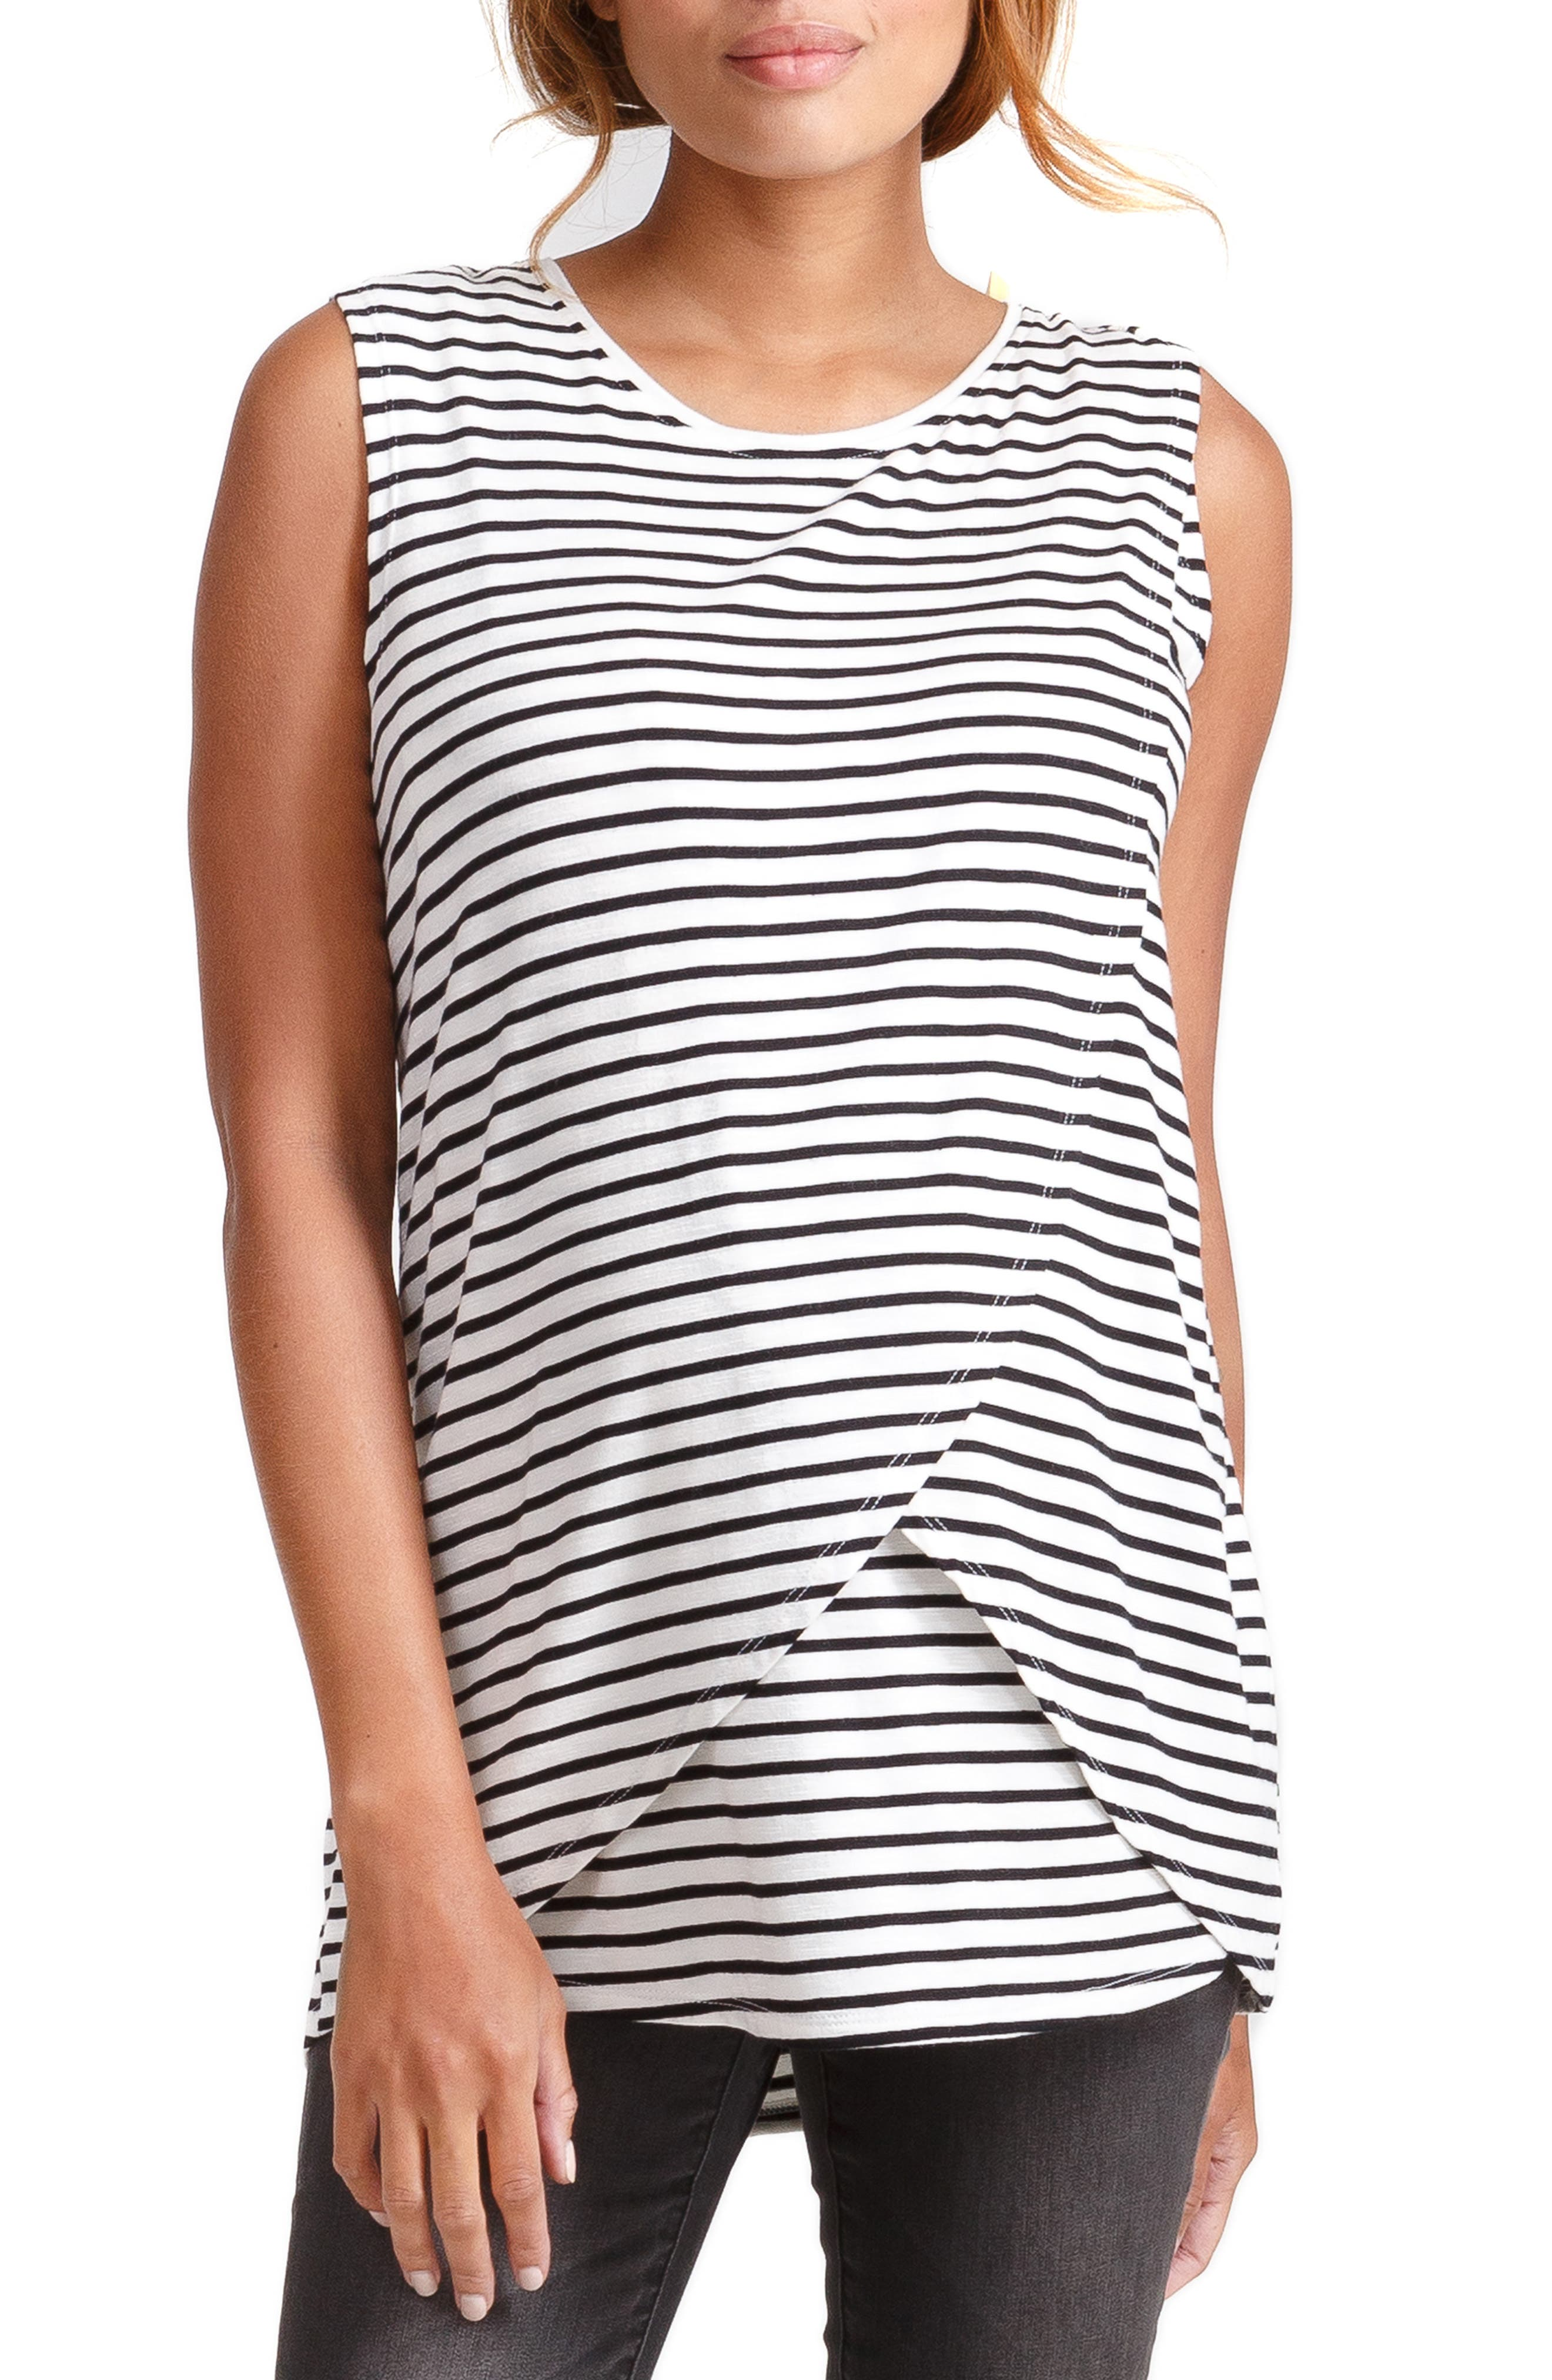 INGRID & ISABEL<SUP>®</SUP>, Cross Front Maternity/Nursing Top, Main thumbnail 1, color, BLACK/ WHITE STRIPE